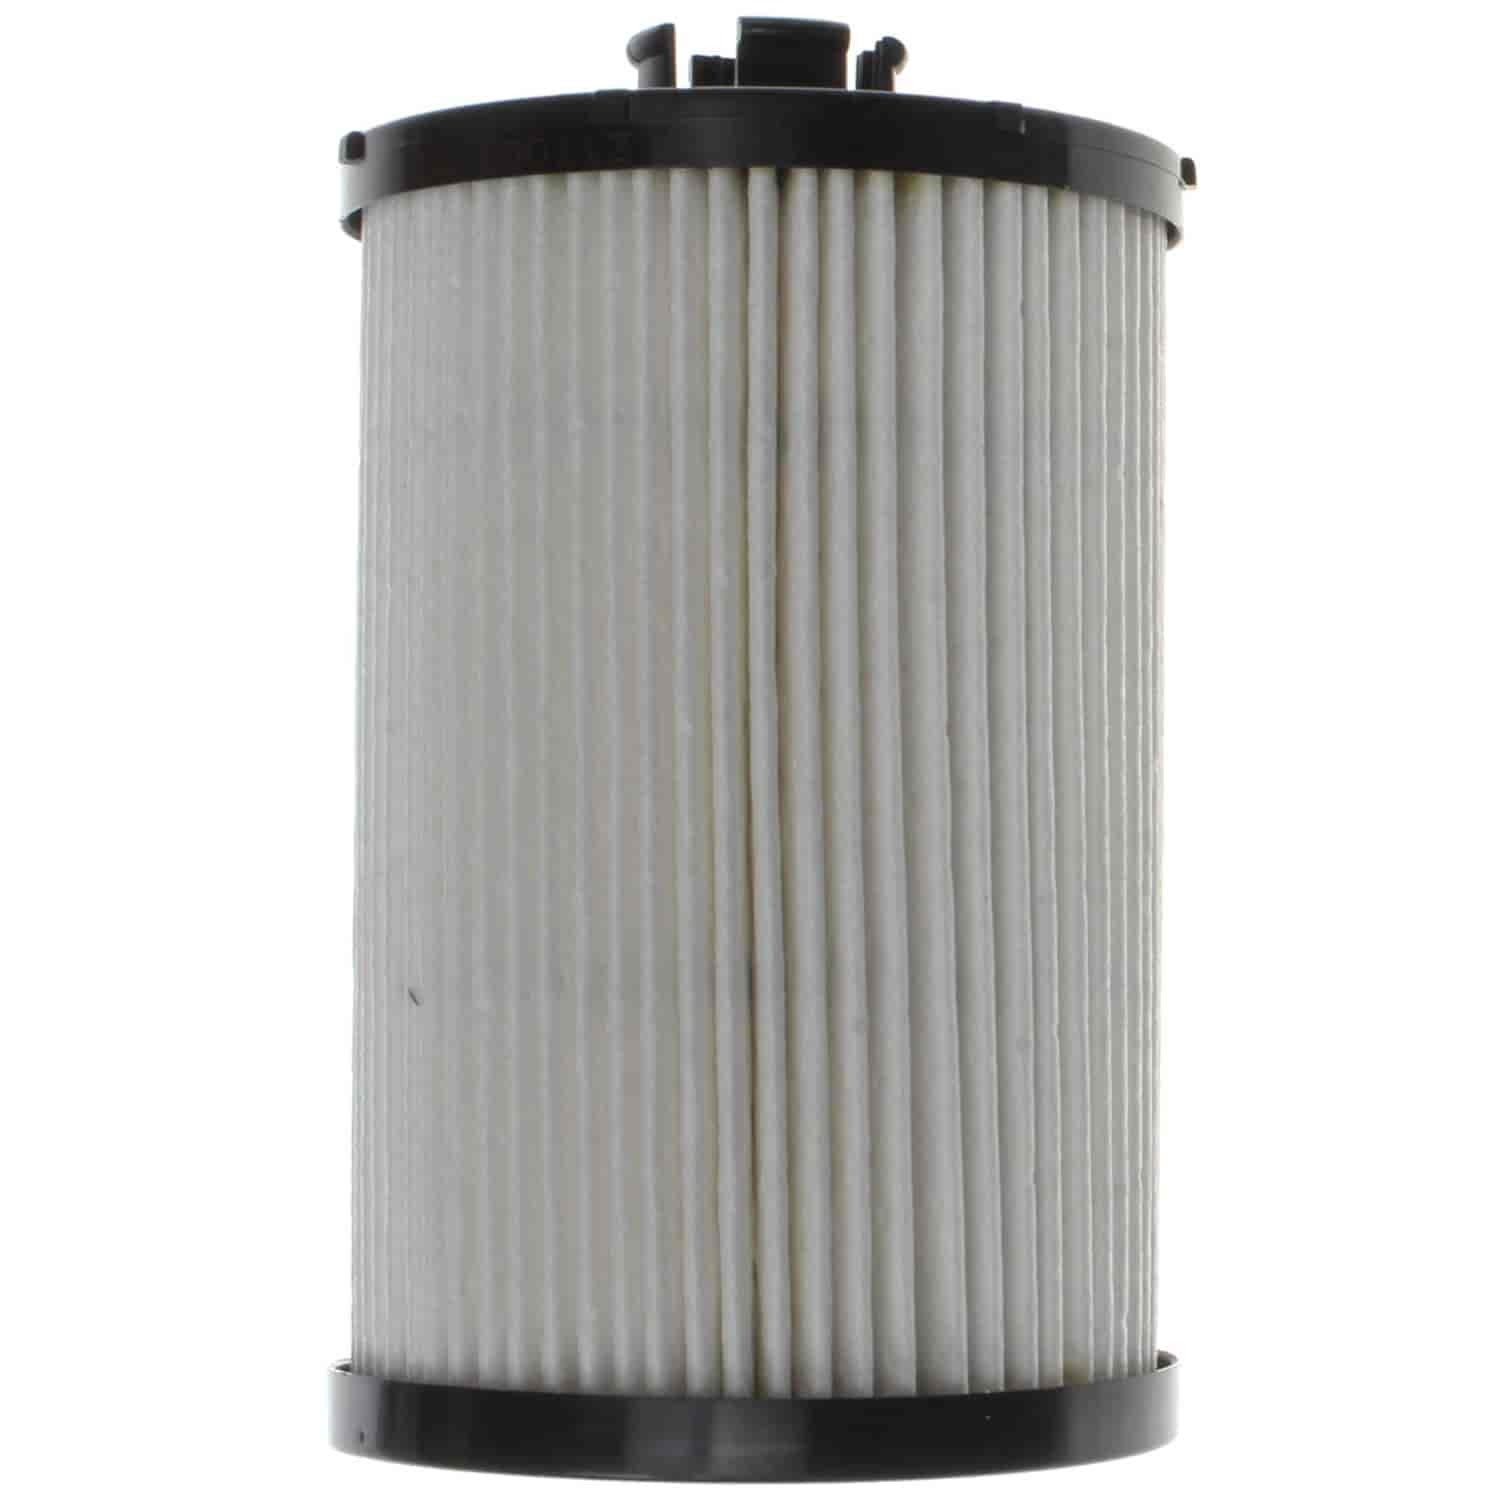 Clevite MAHLE Mahle Fuel Filter Champion Bus Defender With MaxxForce 7 6.4L  MaxxForce DT466 7.6L Engine